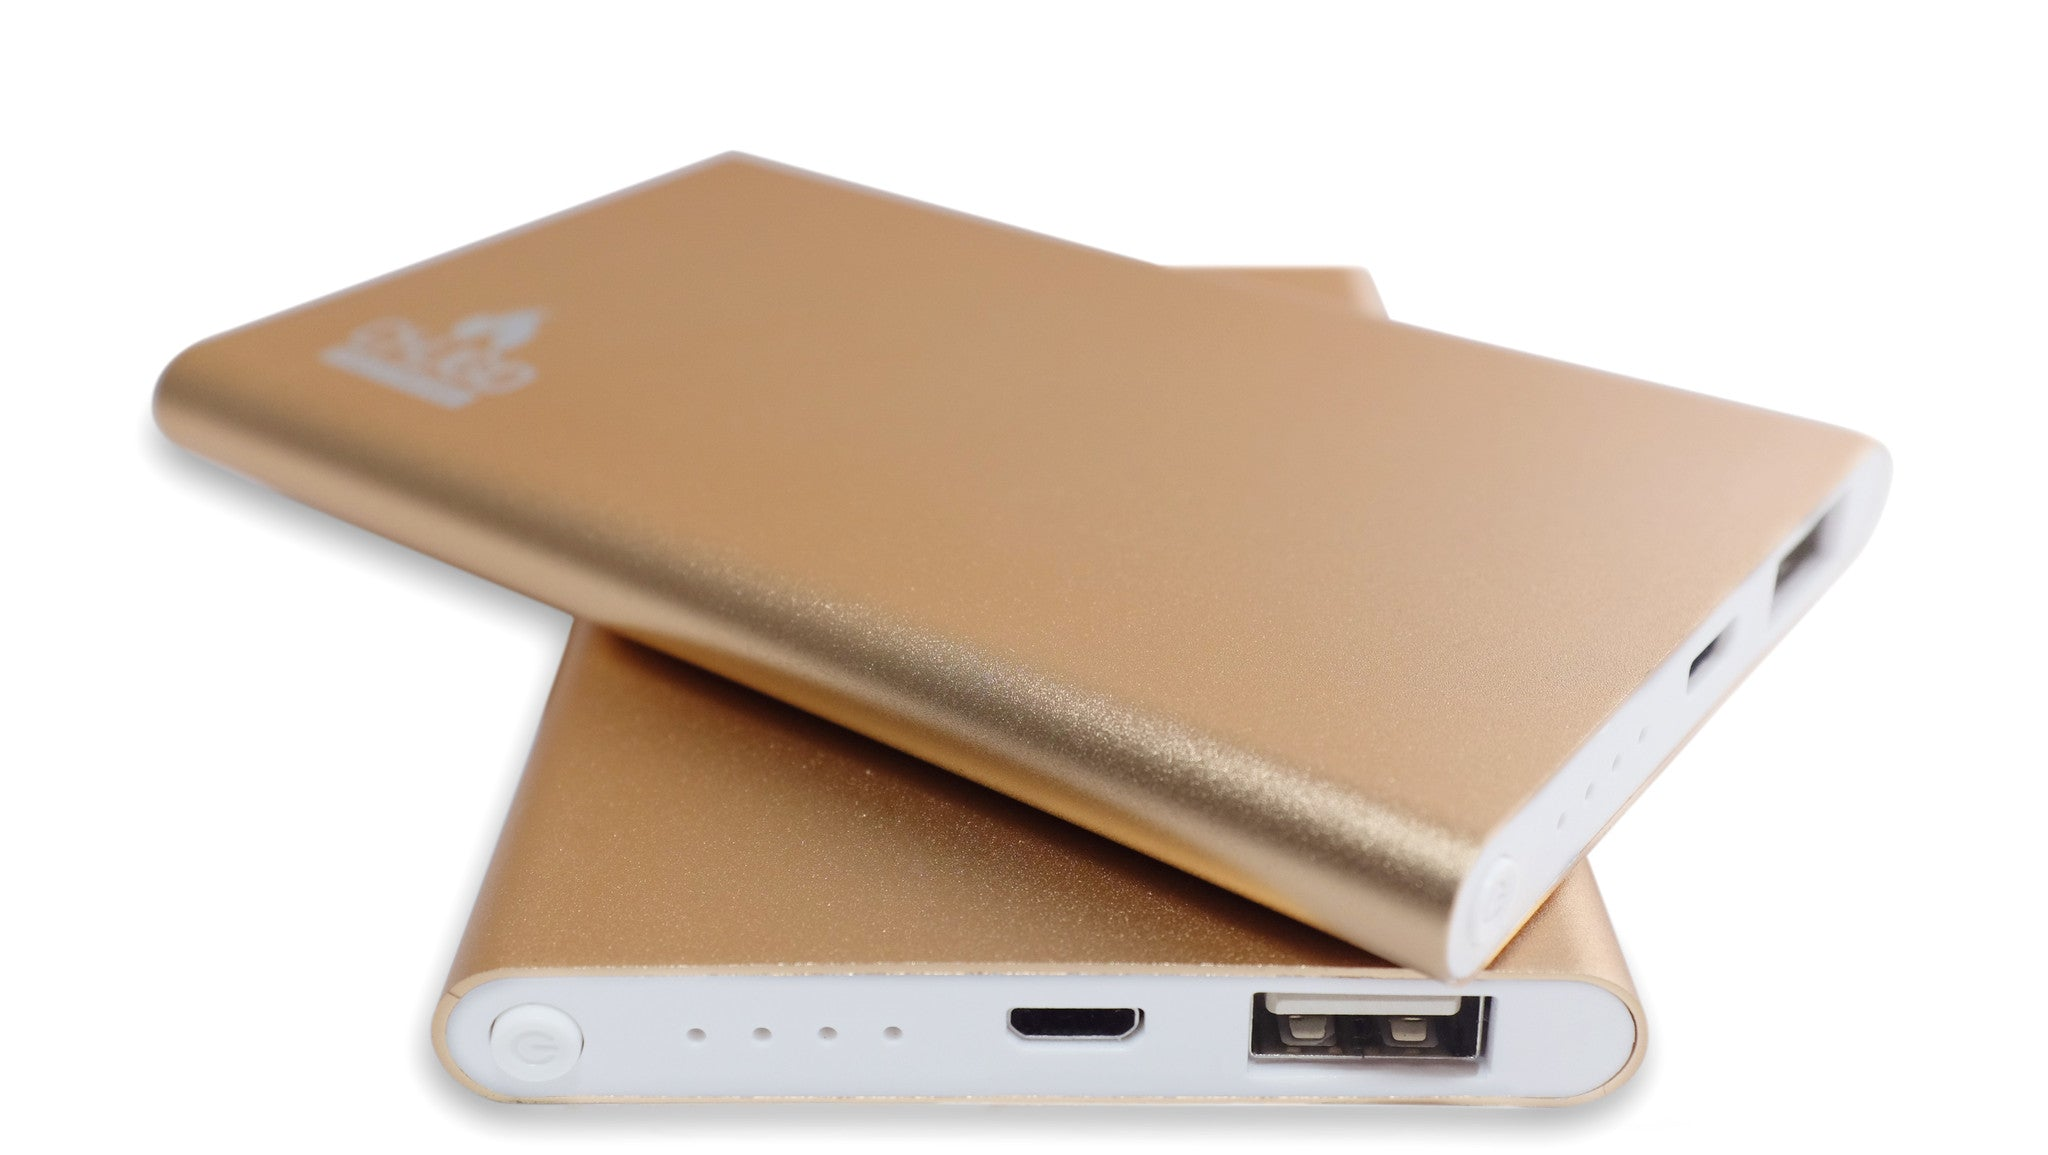 CHJGD® Premium Luxury 4000 mAh Gold Power Bank - CHARGEDPOWER.COM